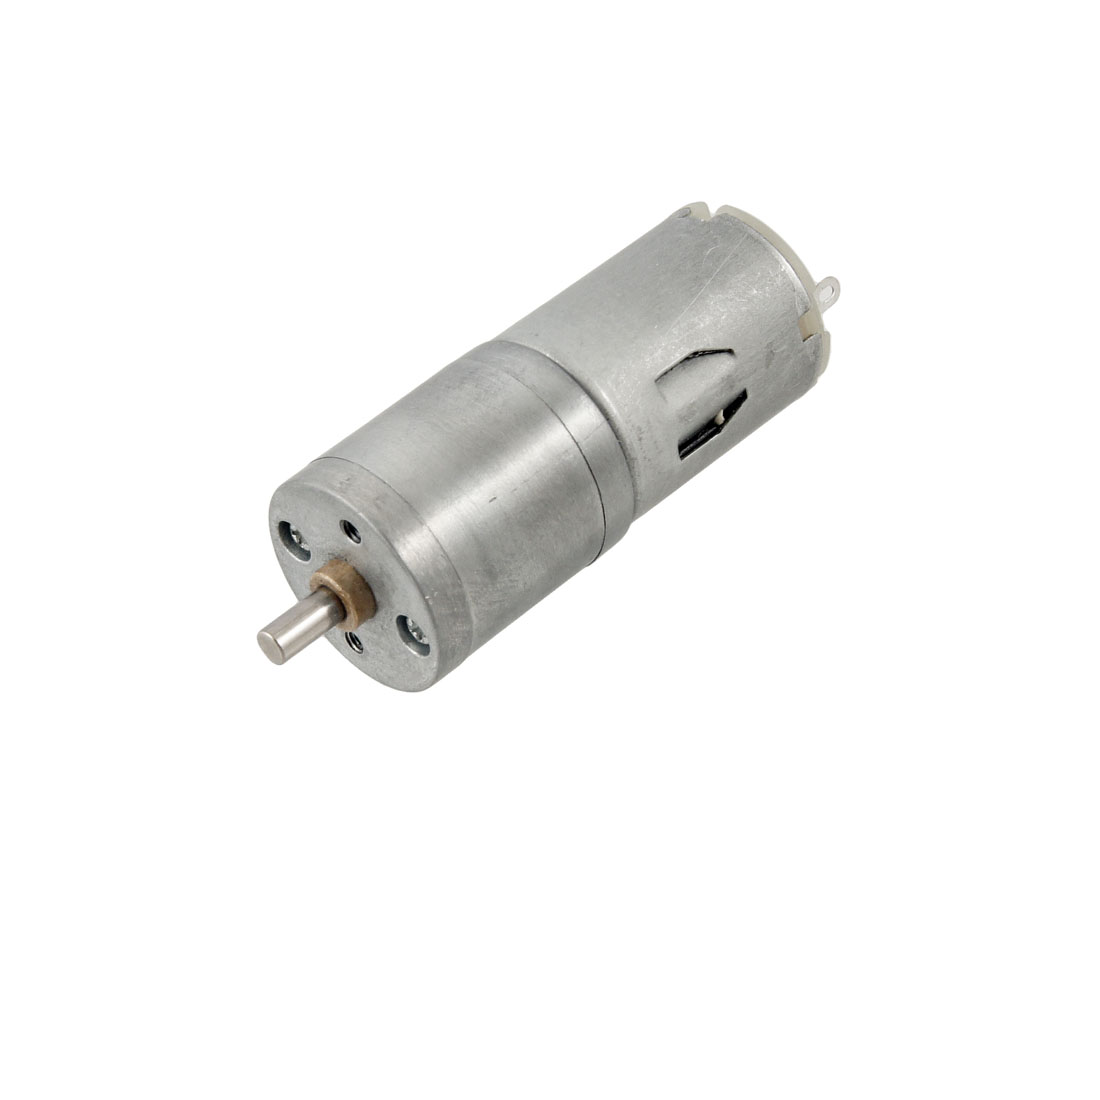 SRC280 GA25 DC 12V 1A Micro Gear Box Speed Reducing Motor